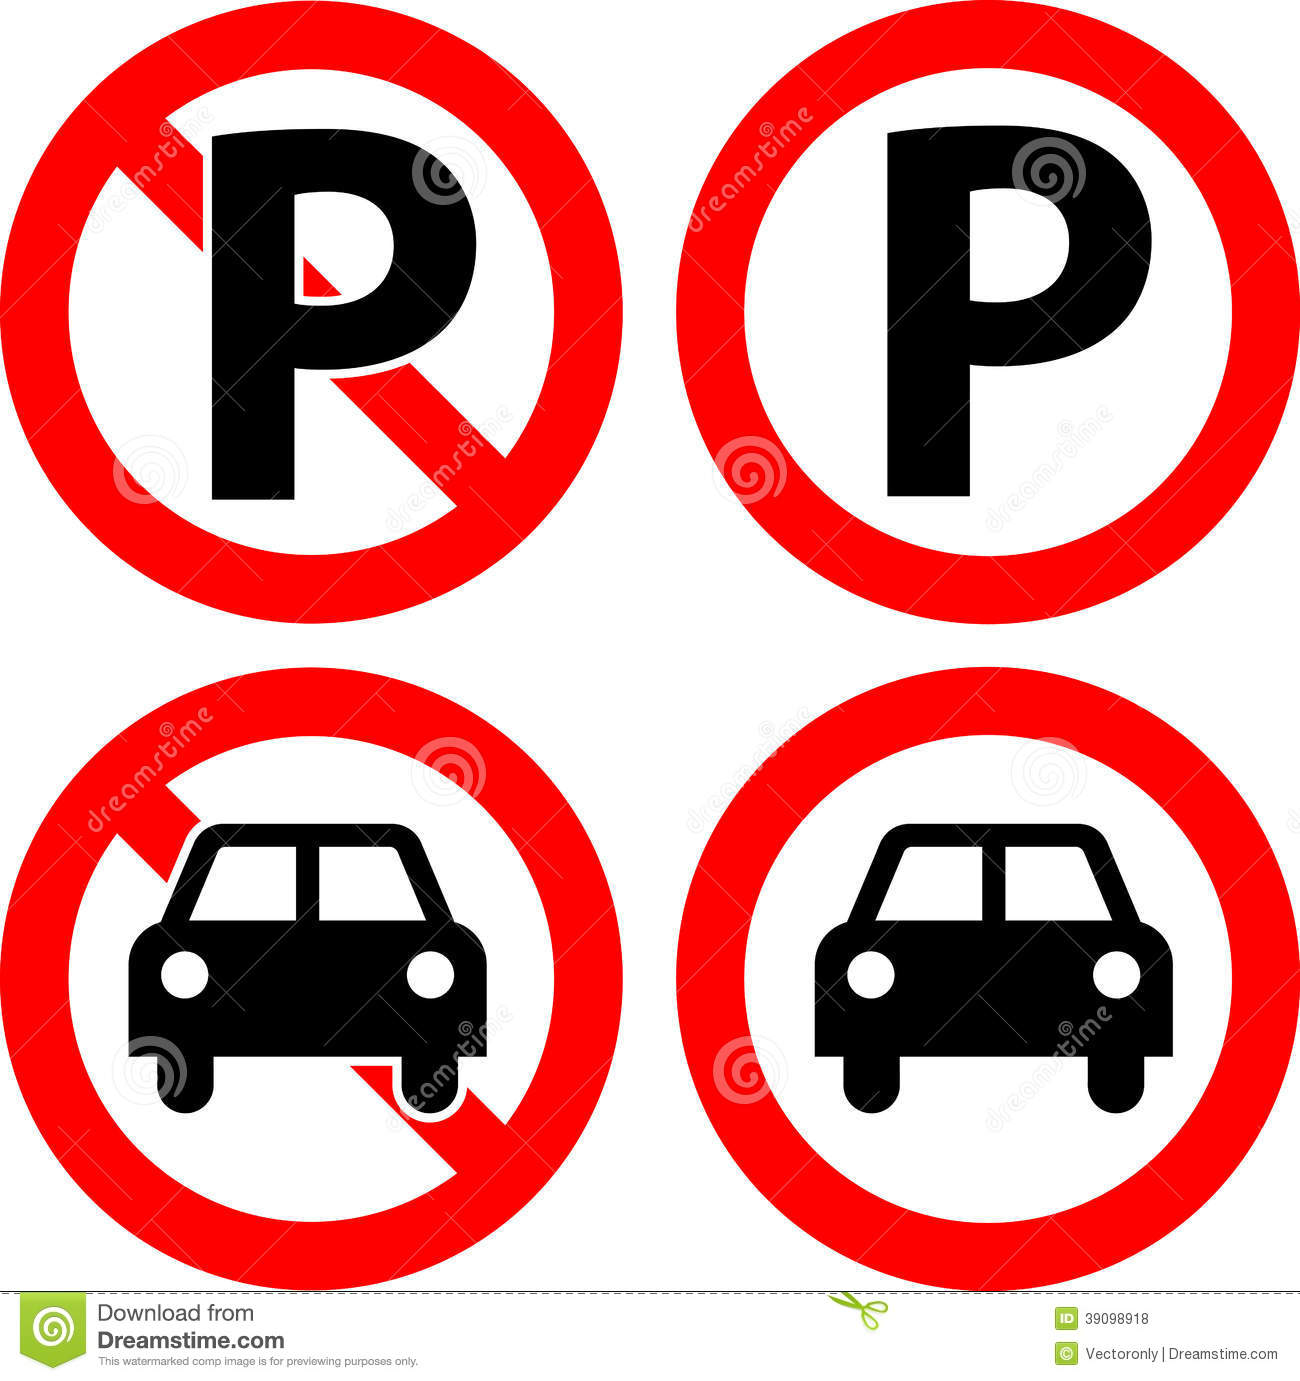 no-parking-illustrations-icons-39098918.